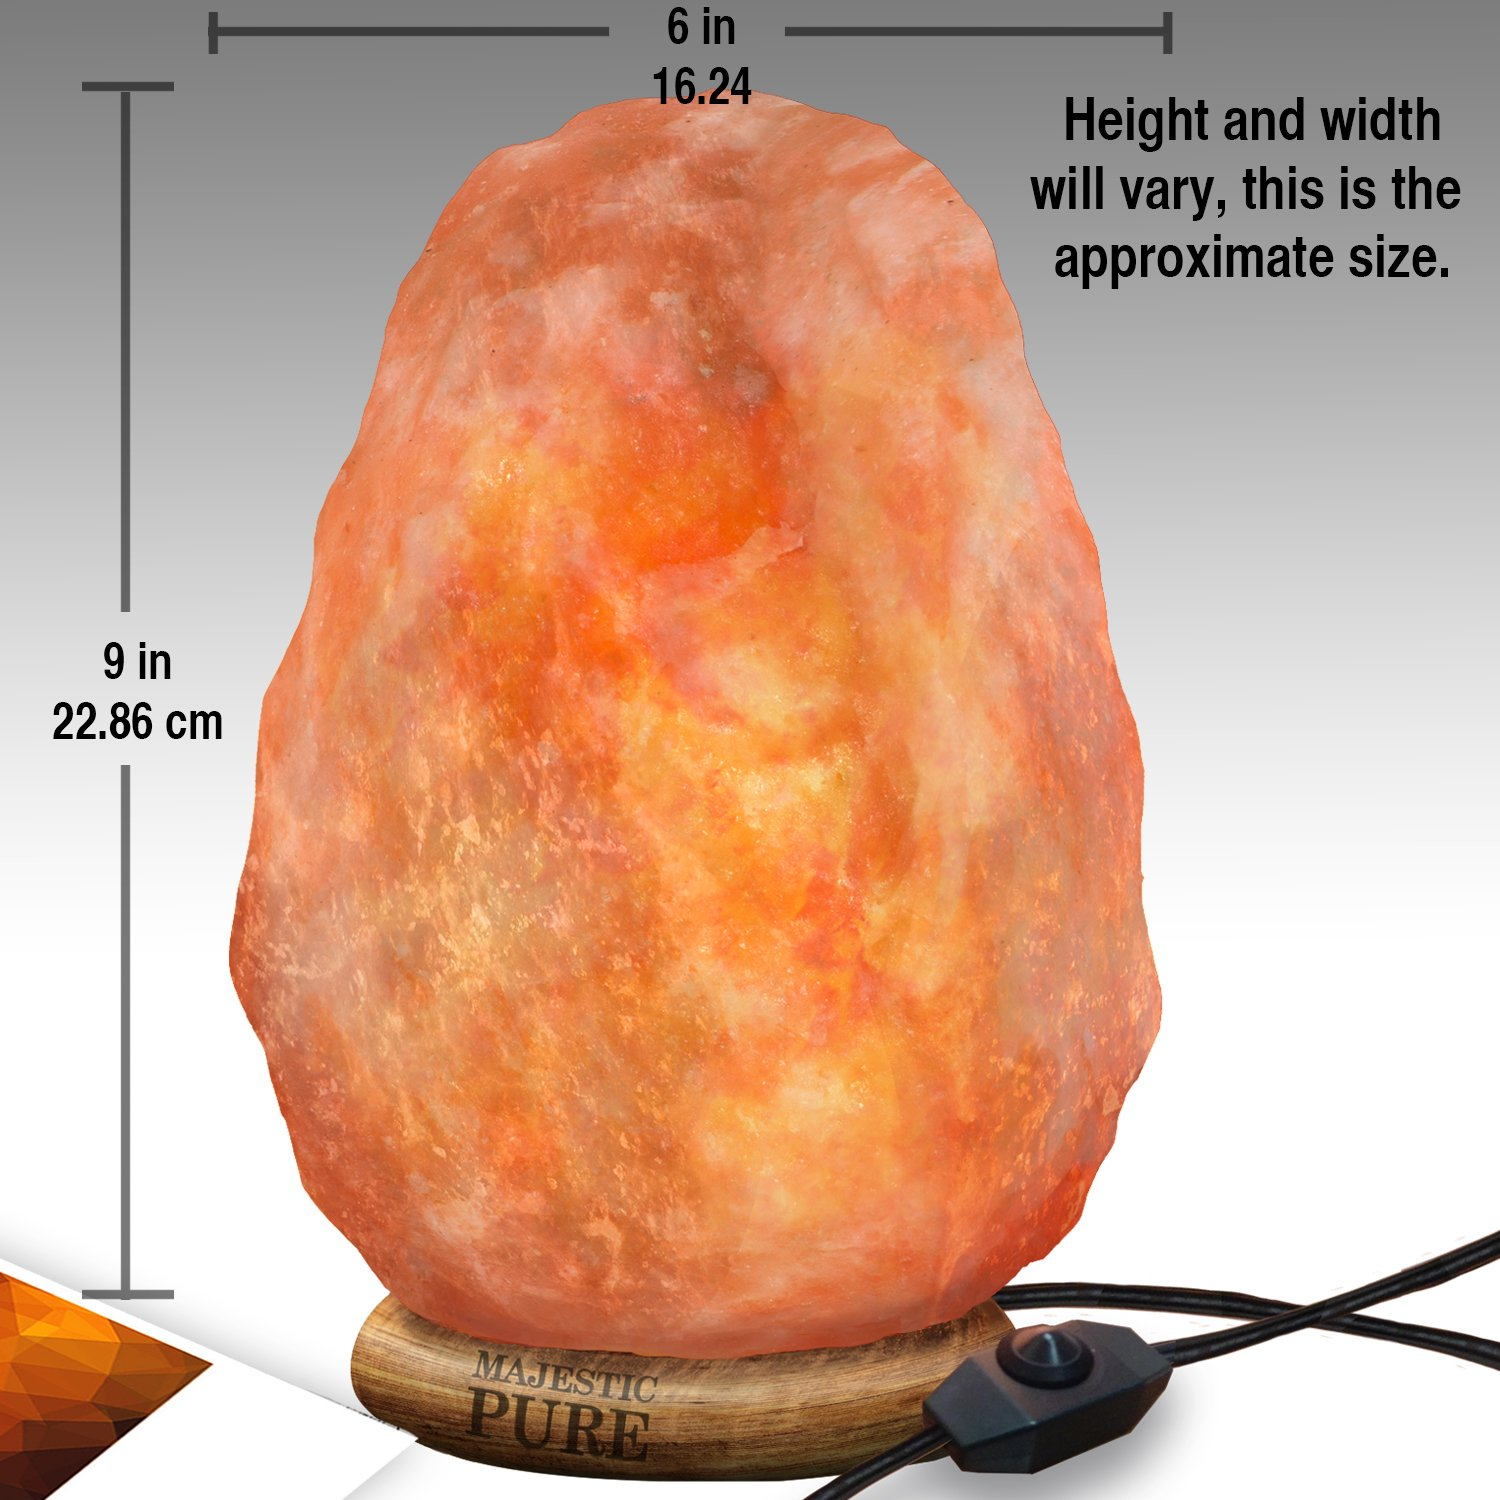 Majestic Pure Himalayan Salt Lamp - Natural Pink Salt Rock Lamp, Hand Carved, Wooden Base, Brightness Dimmer, 3 Bulbs, UL-Listed Cord and Gift Box, 8-11 lbs by Majestic Pure (Image #1)